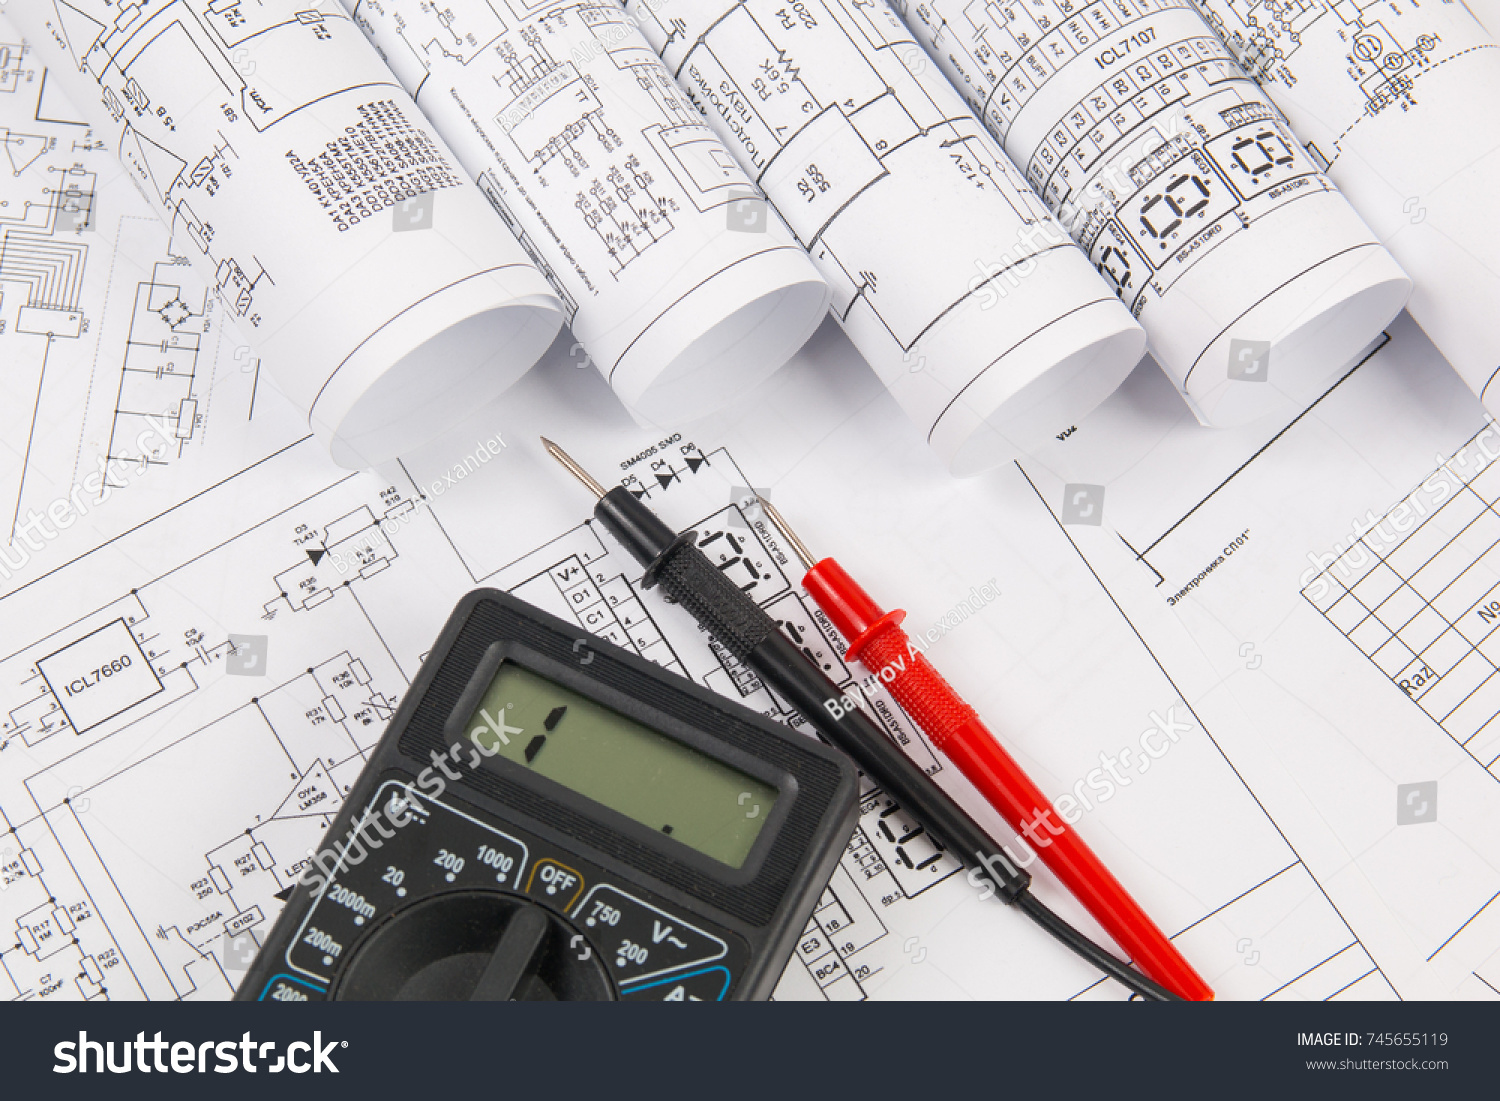 hight resolution of electrical engineering drawings and digital multimeter